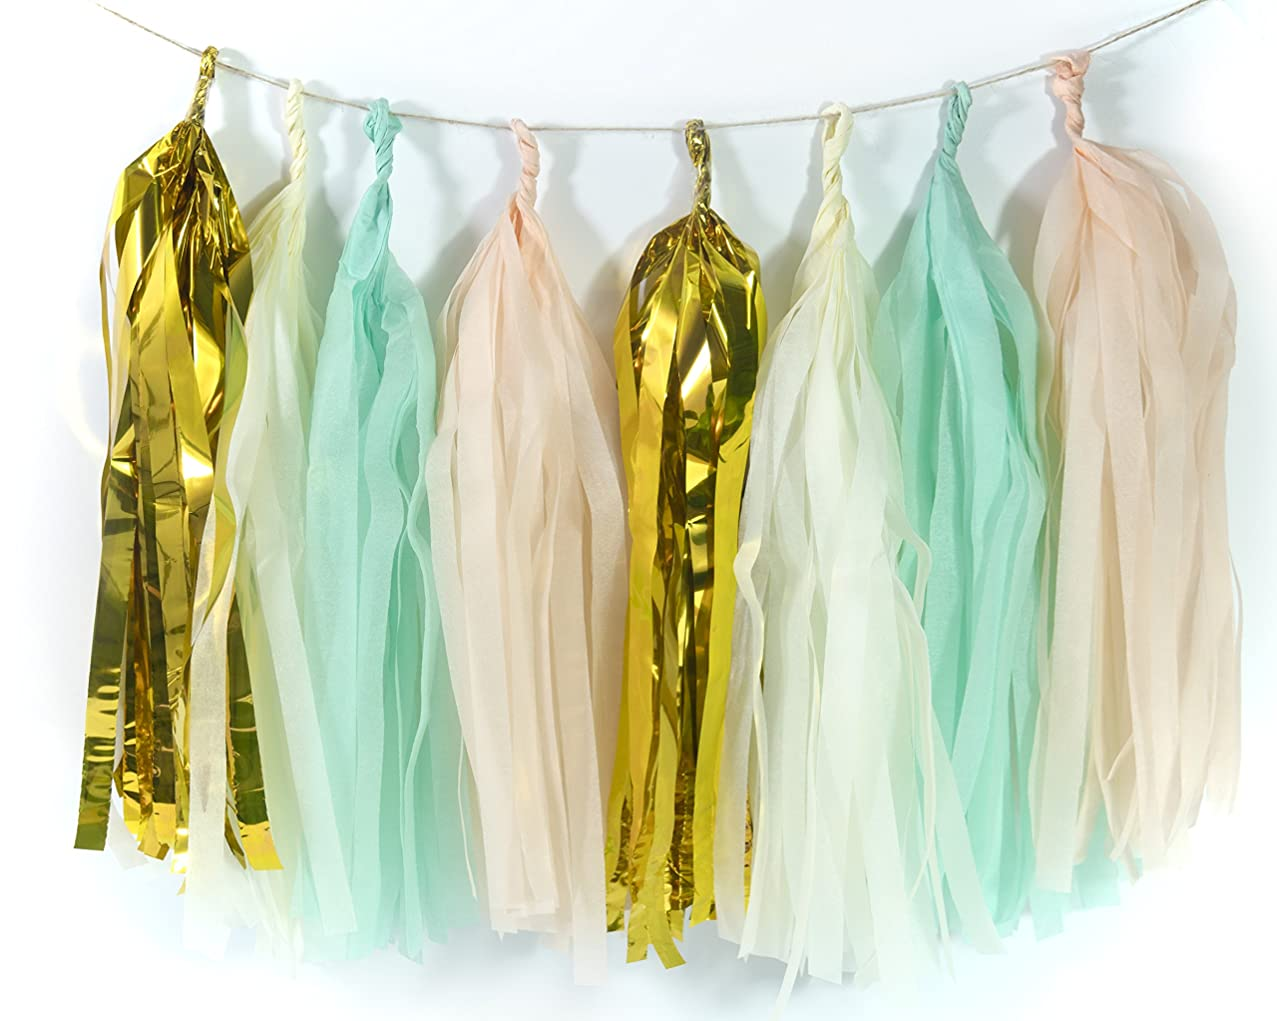 ALL in ONE 20pcs Tissue Paper Tassels Tassel Garland Banner for Wedding Baby Shower Party Holiday Event Decoration (Mint+Peach+Ivory+Gold) xixqybmlso054